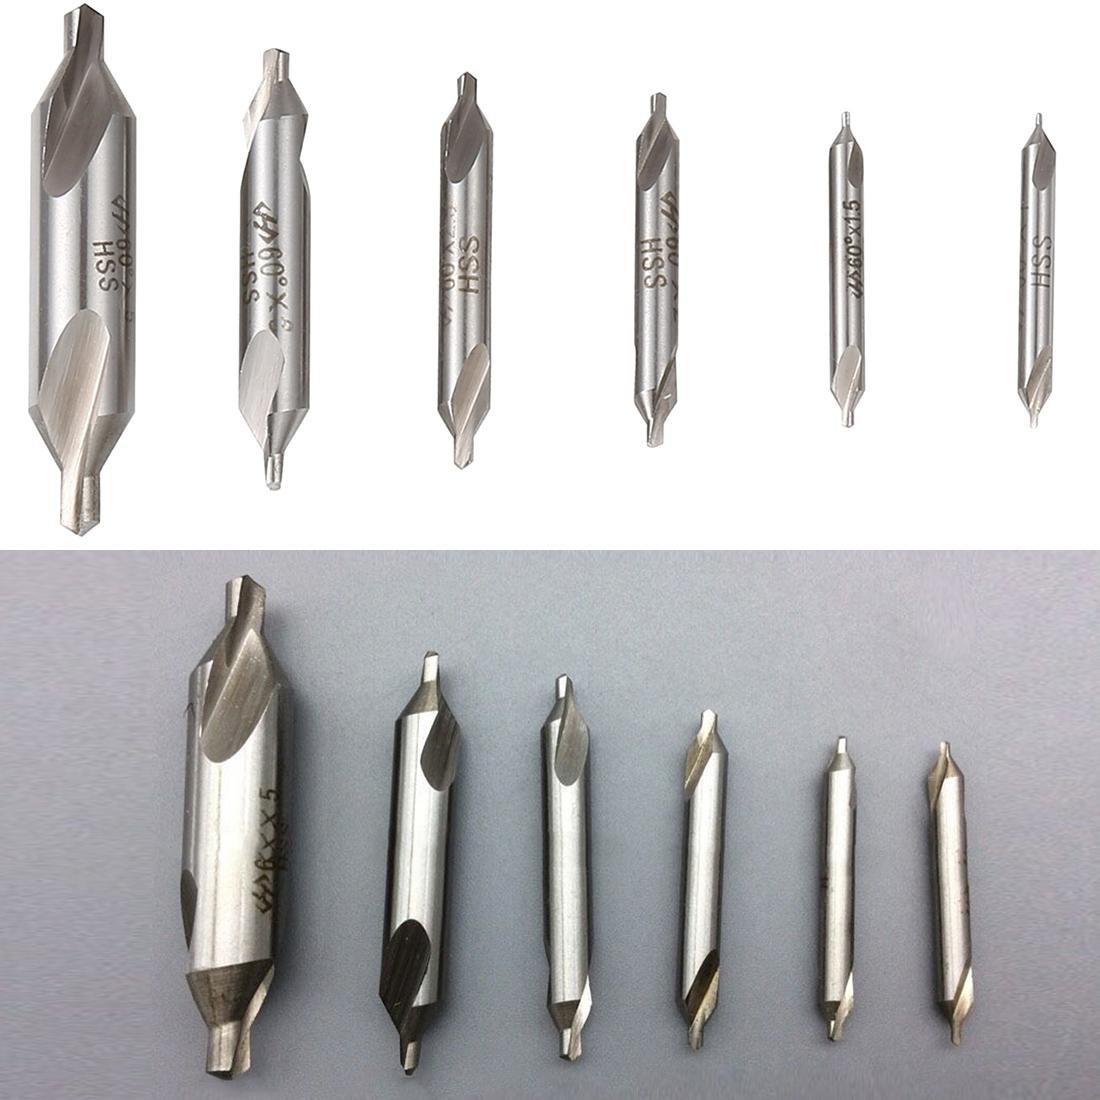 6pcs/set 5/3/2.5/2/1.5/1mm  HSS Center Drill Bits Set Precision Combined Countersinks Kit 60 Degree Angle  for Lathe High speed